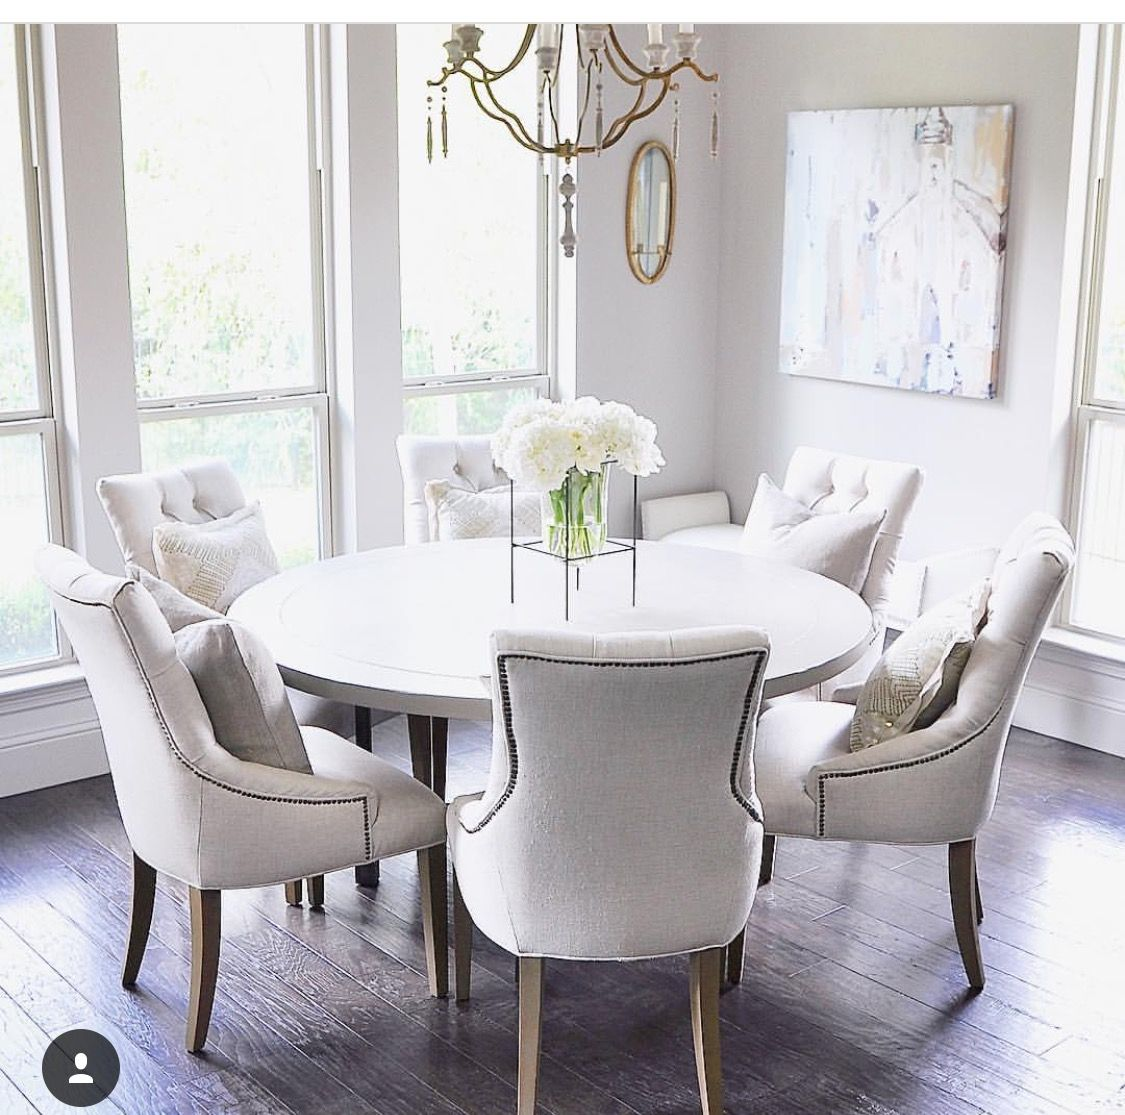 White Dining Room Table And Chairs (With Images)